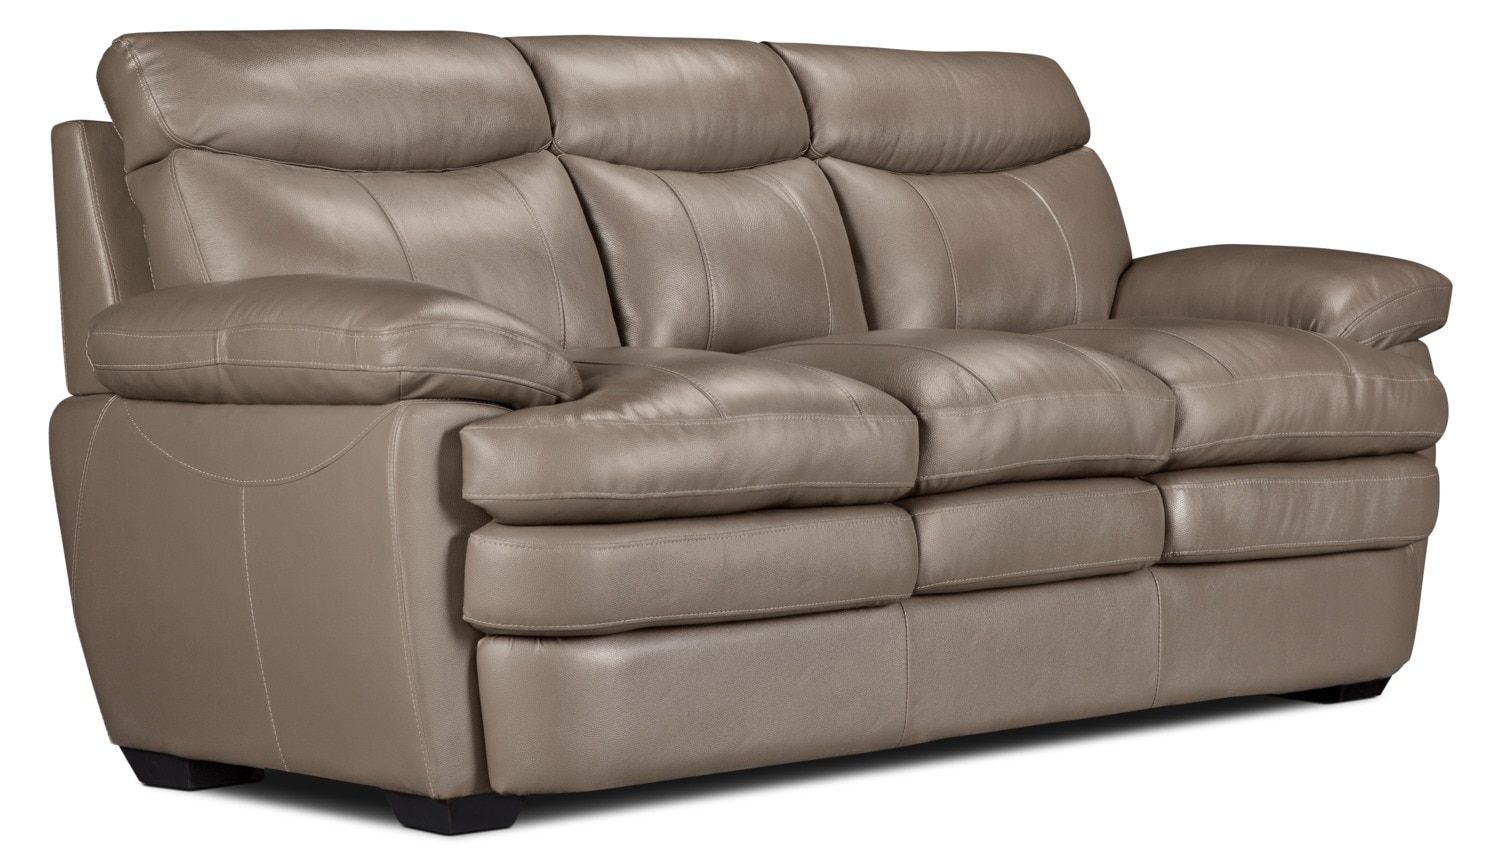 marty genuine leather sofa dark taupe united furniture warehouse. Black Bedroom Furniture Sets. Home Design Ideas